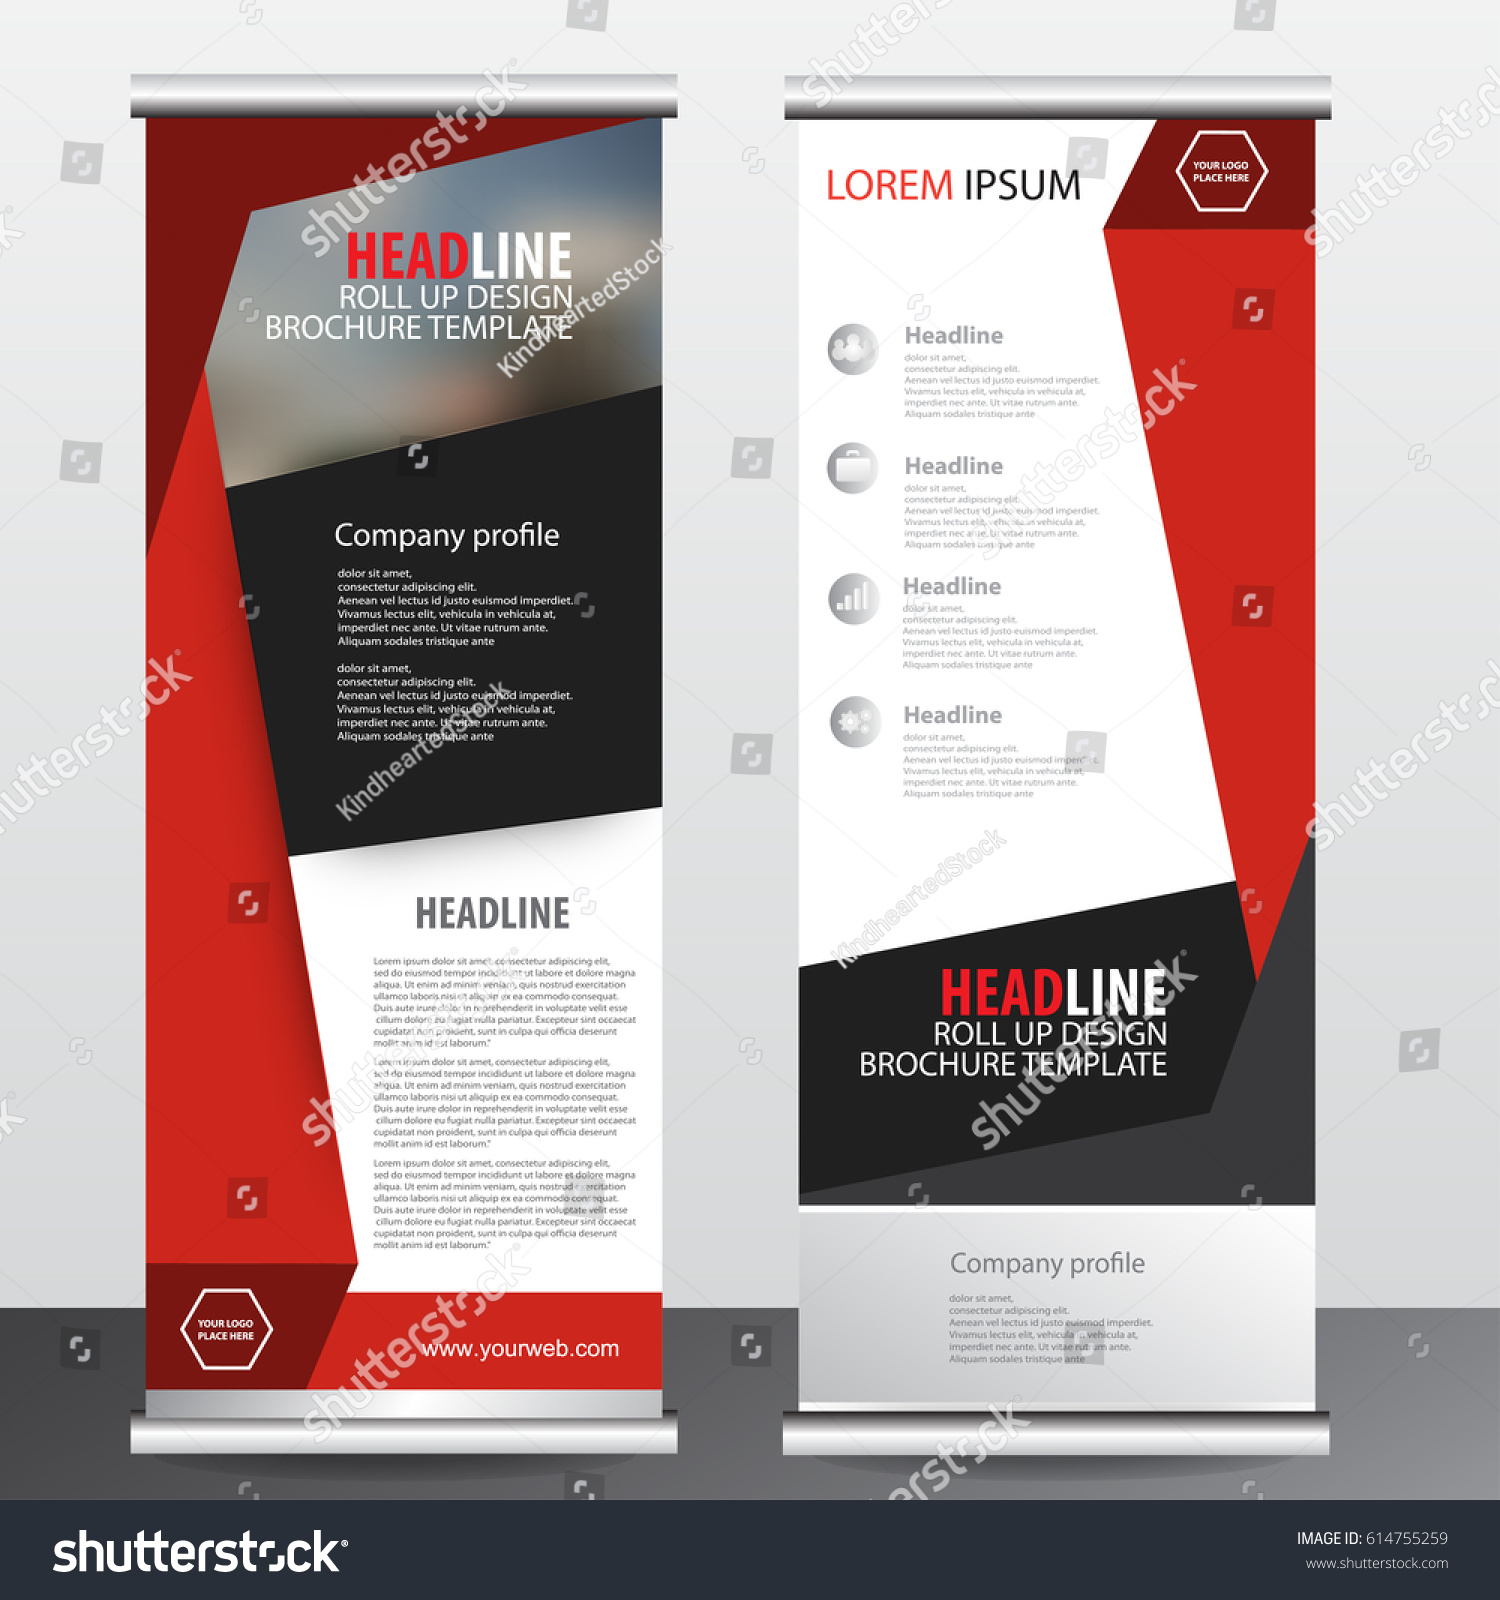 Roll Business Brochure Flyer Banner Design Stock Vector Royalty